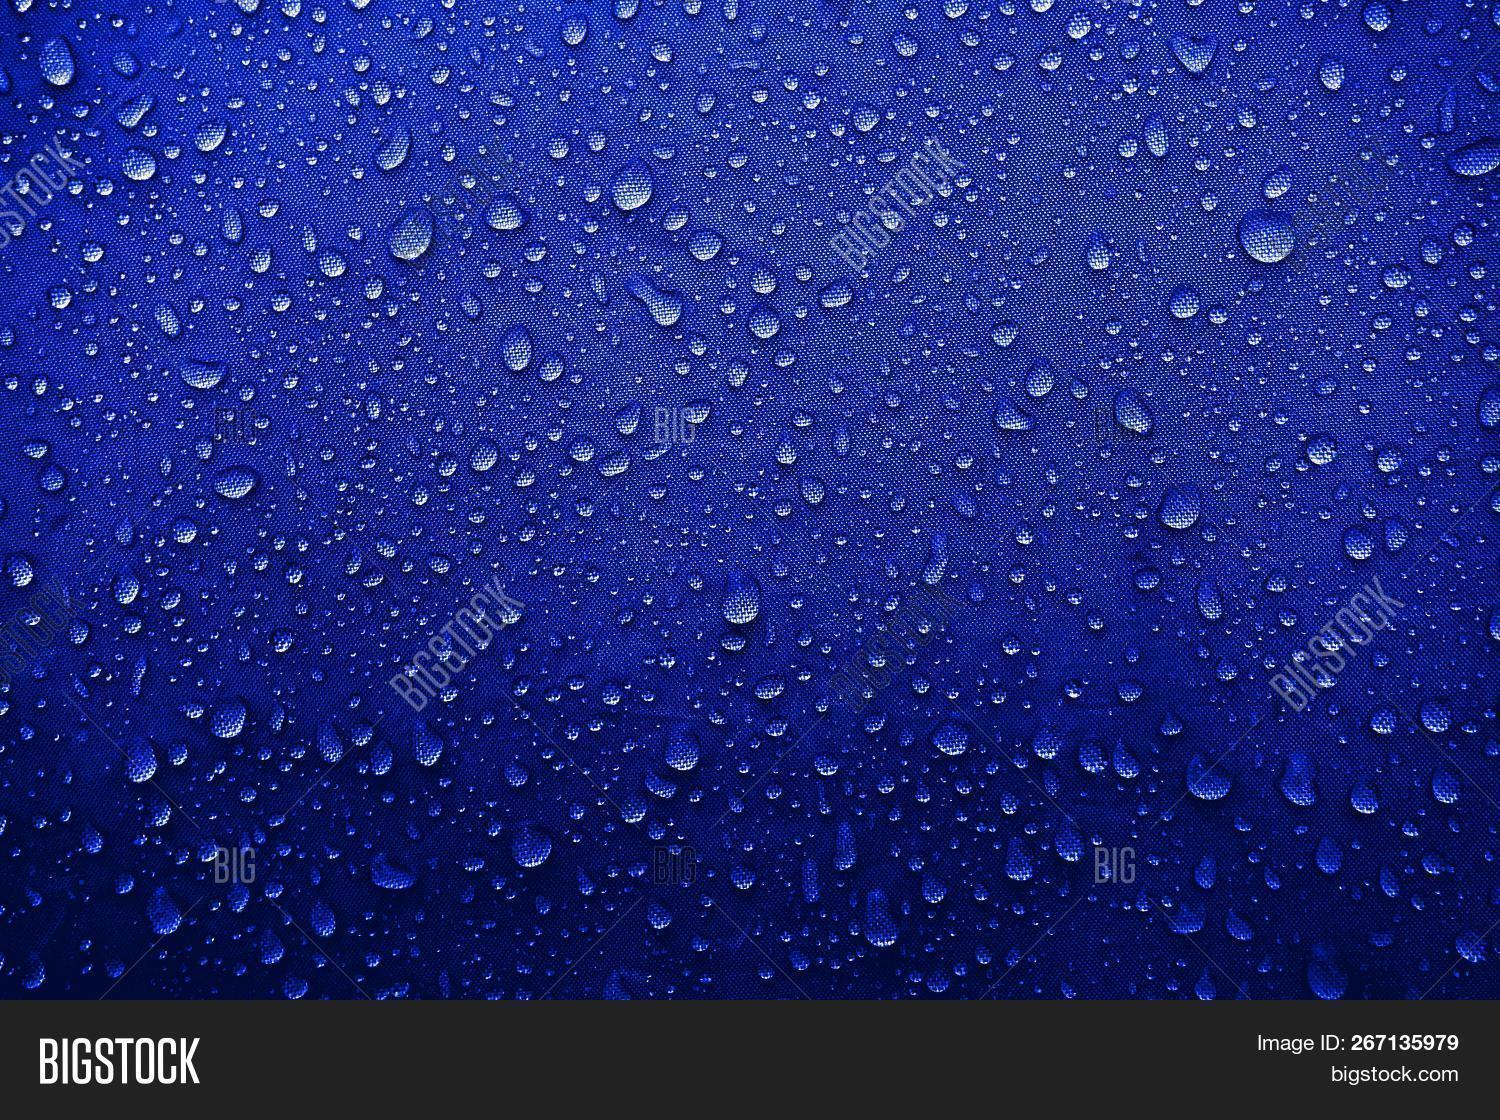 Water Drops On The Fabric. Water Drops On The Background. Condensate. Water Drops Background.